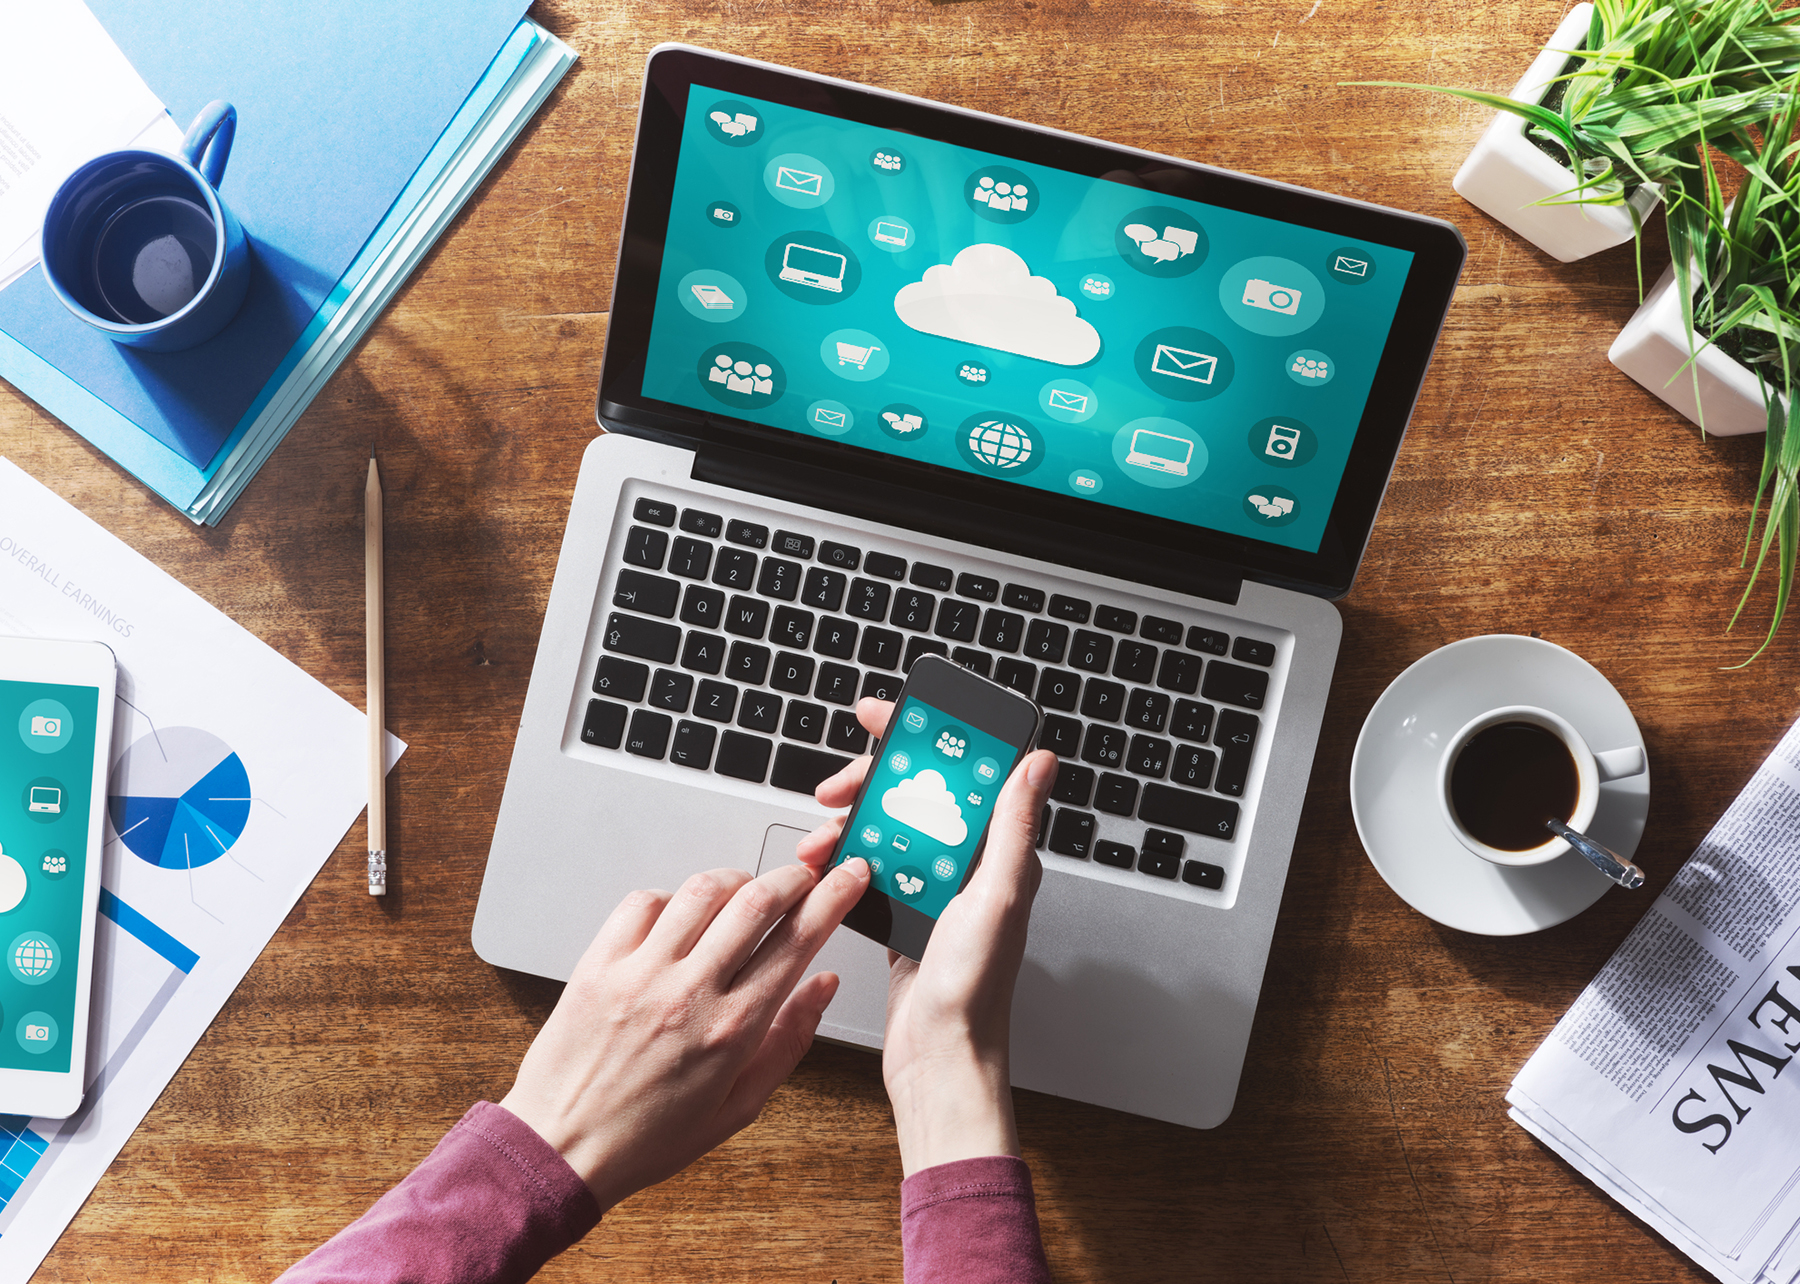 5 Things You Should Know About Cloud Storage